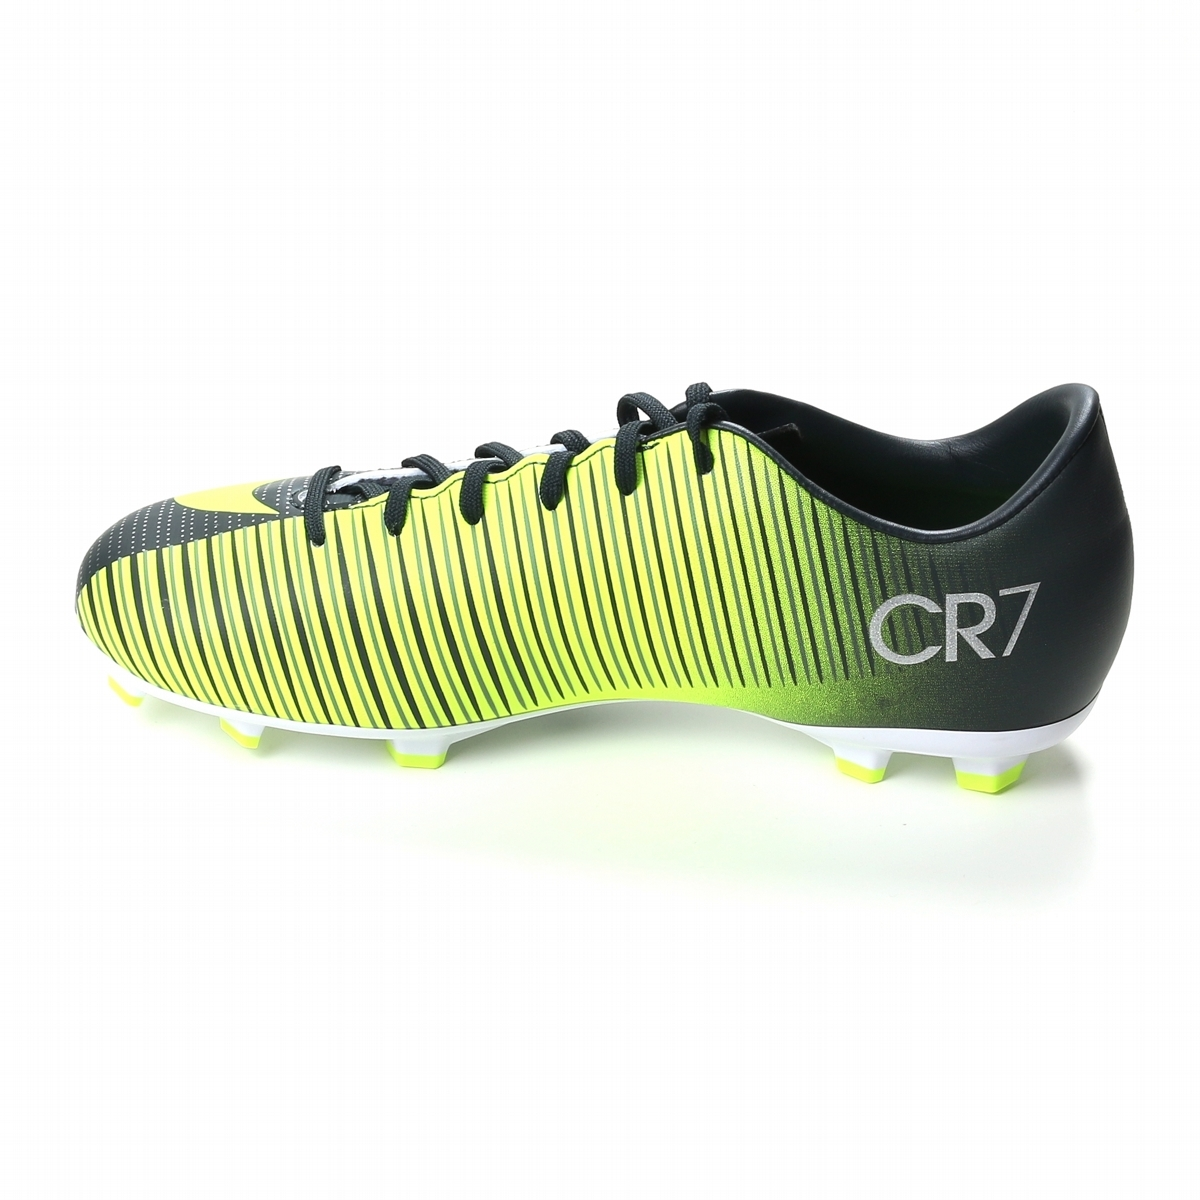 timeless design fc049 a8167 Nike Youth Mercurial Vapor XI CR7 FG Soccer Cleats  (Seaweed/Volt/Hasta/White)